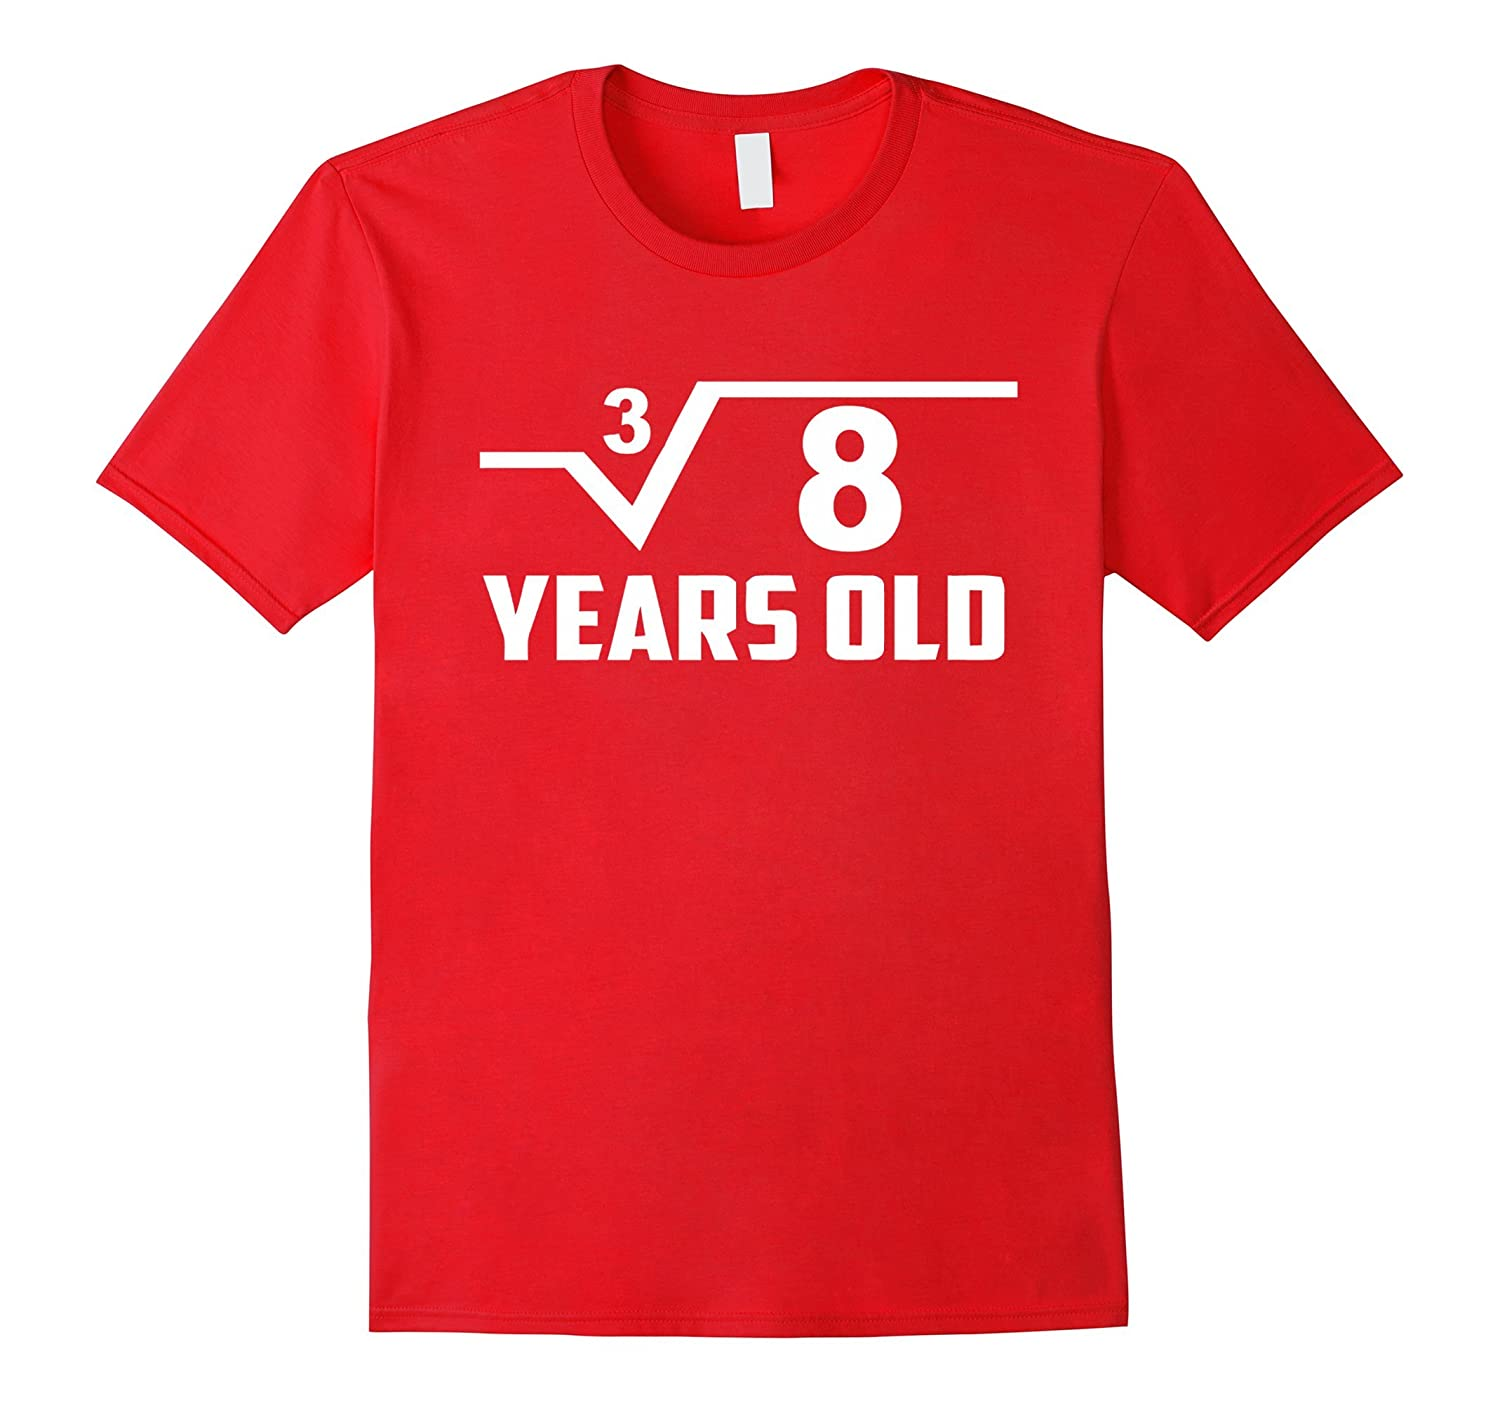 Cube Root Of 8 2 Years Old Birthday T Shirt Square Tee Gm